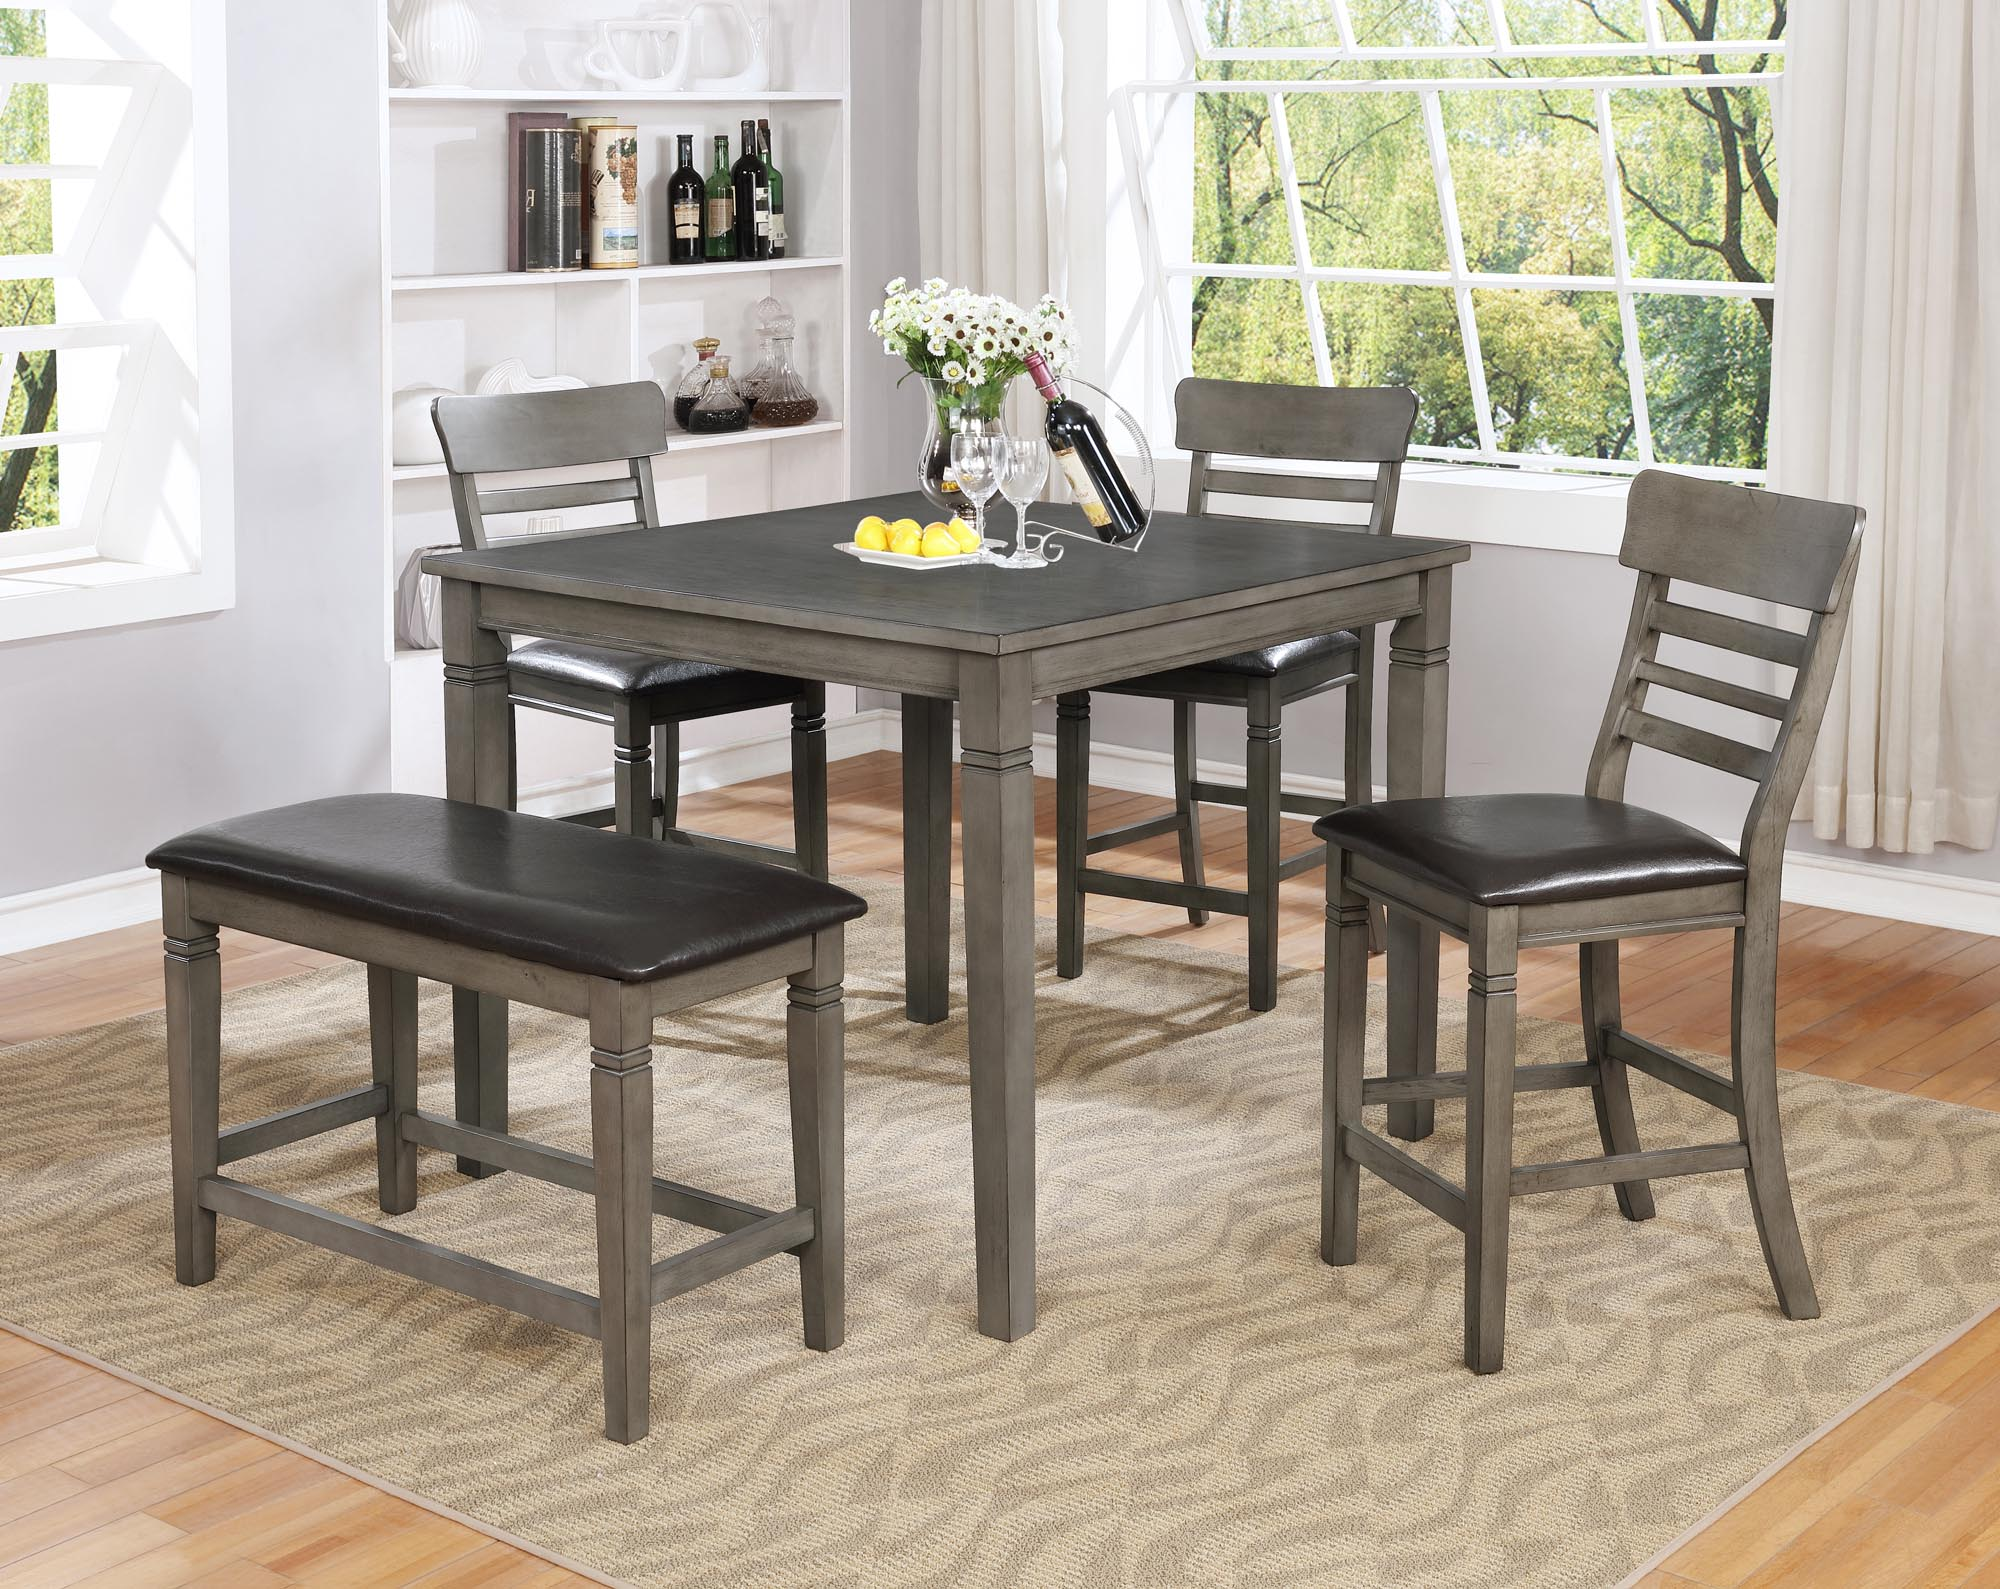 1744 Parker Grey 5 Piece Pub Dinette Set $479.99